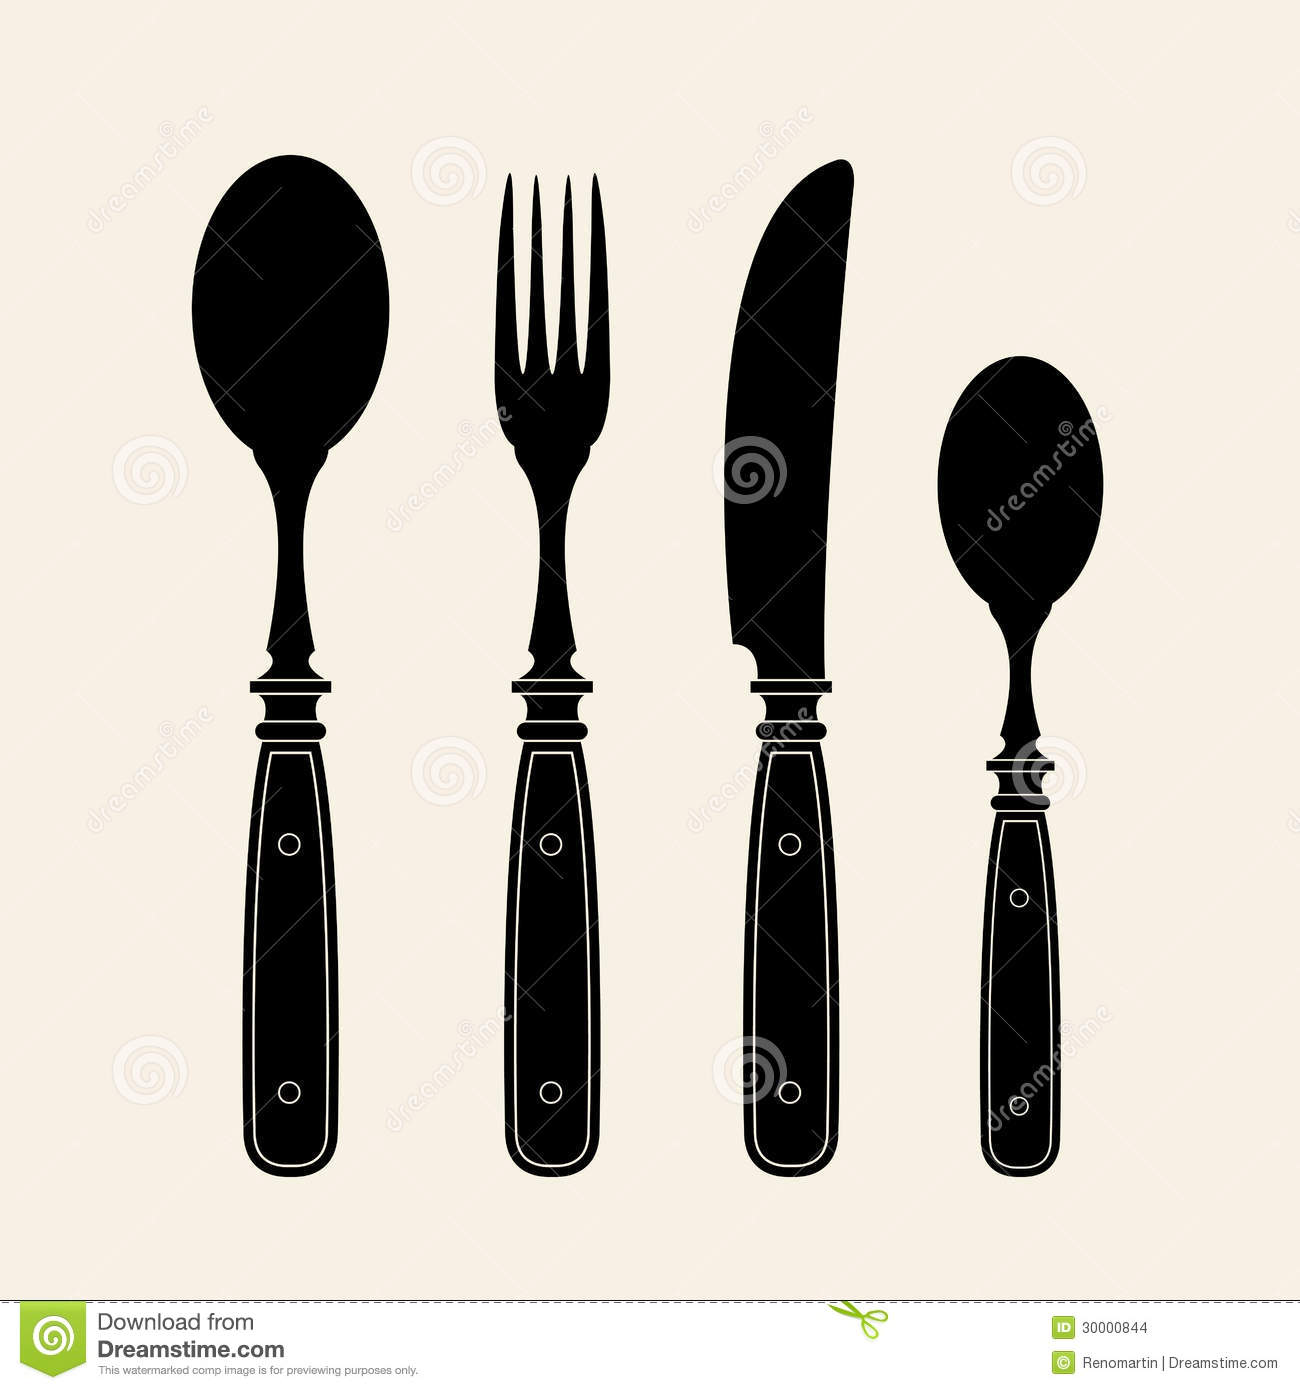 how to eat with fork and knife video dailymotion